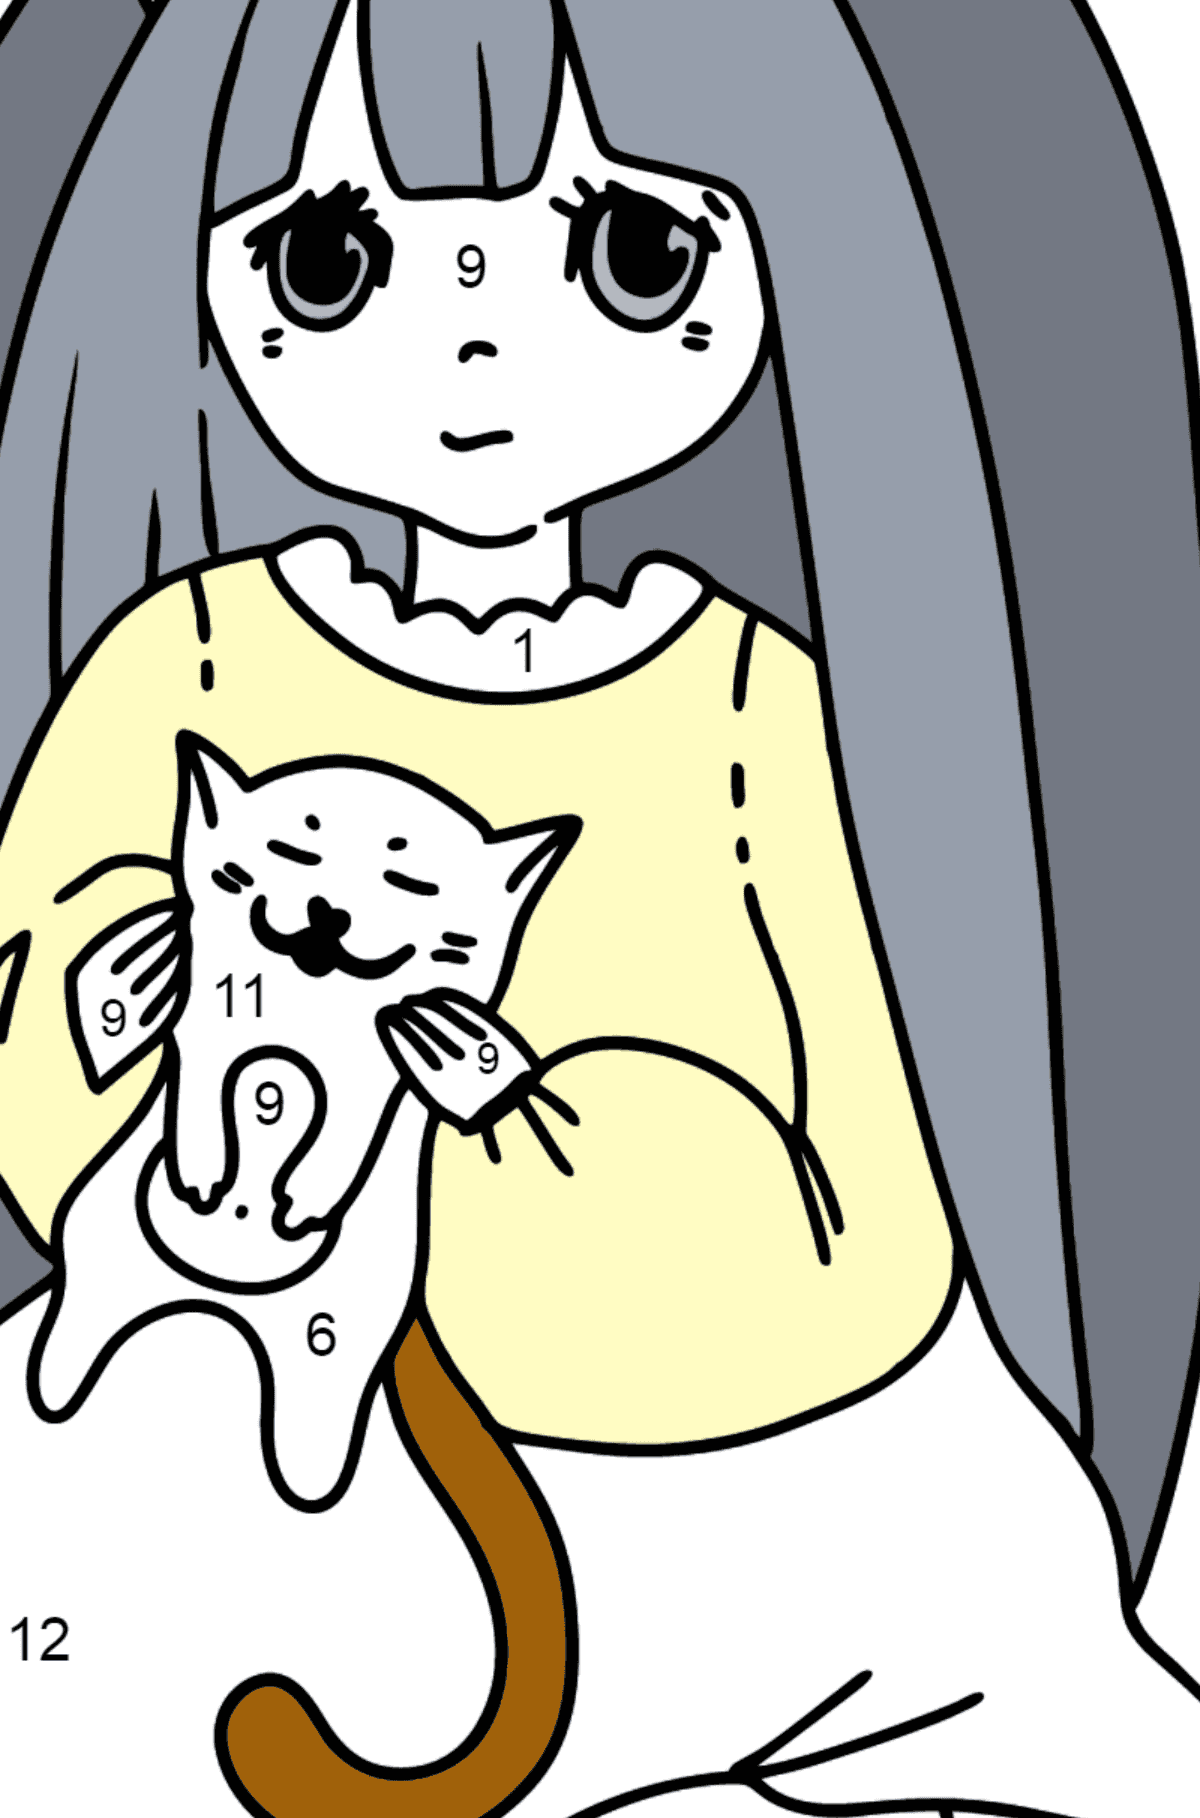 Anime Girl Playing with Kitten coloring page - Coloring by Numbers for Kids